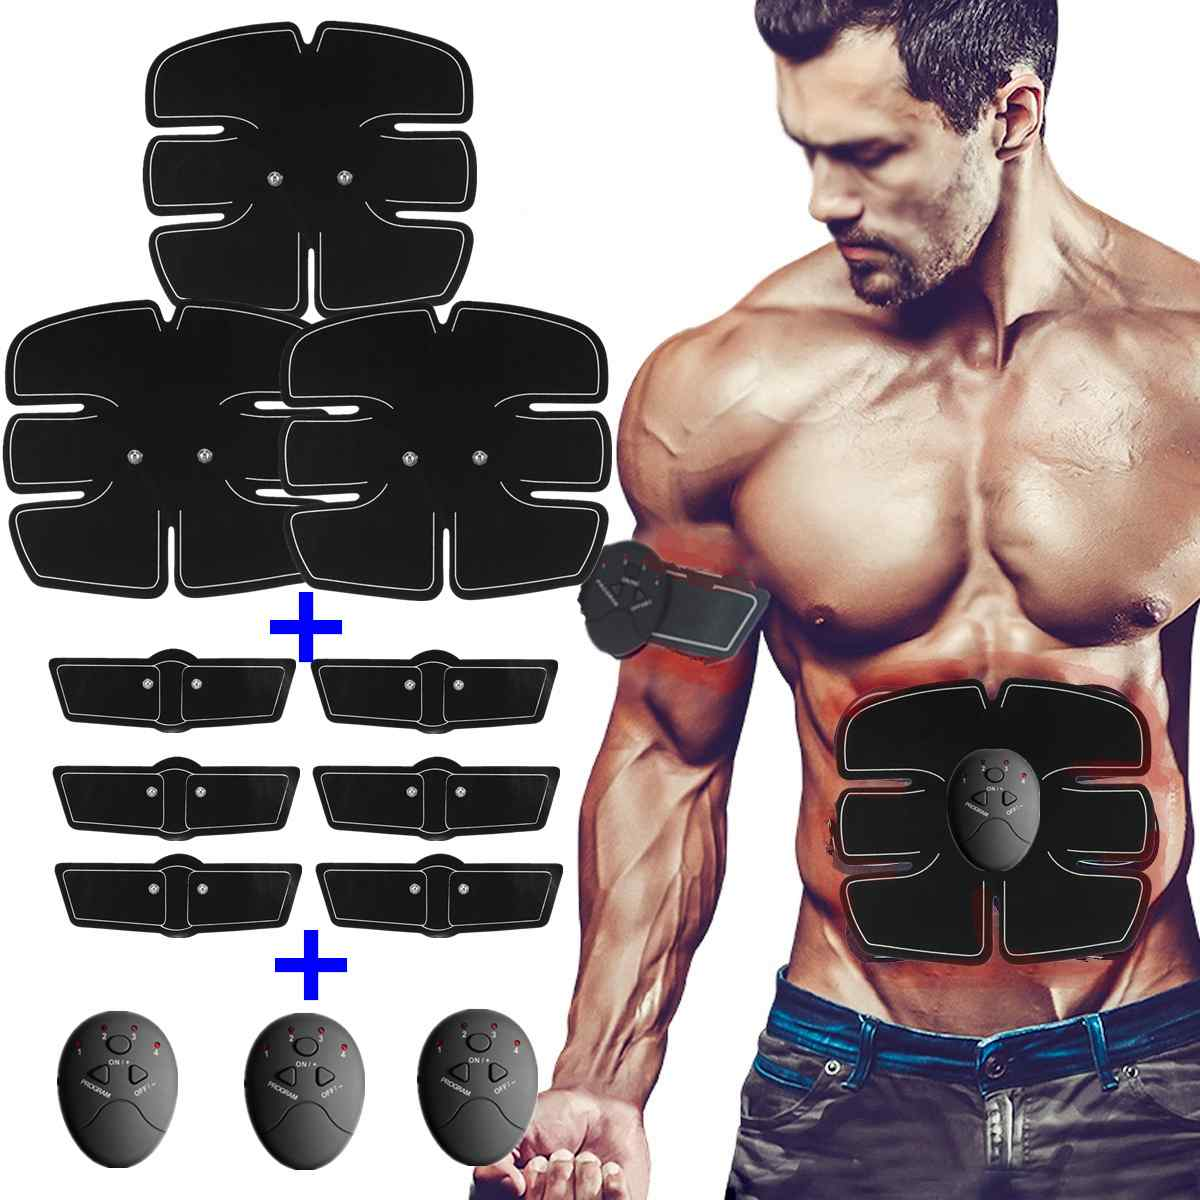 Muscle Training Gear 10 Grade 6 Mode Unisex EMS Muscle Trainer Musculation Fat Burning Body Fitness Stimulator Weight Loss